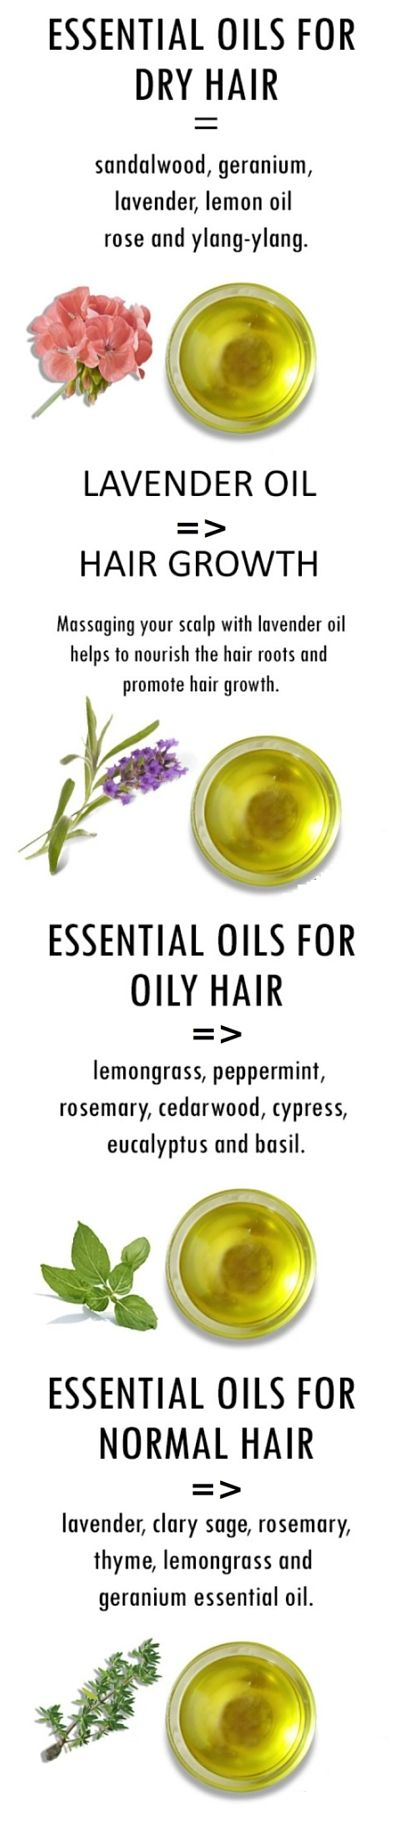 Ways to using natural essential oils for keeping your hair healthy, shiny and manageable